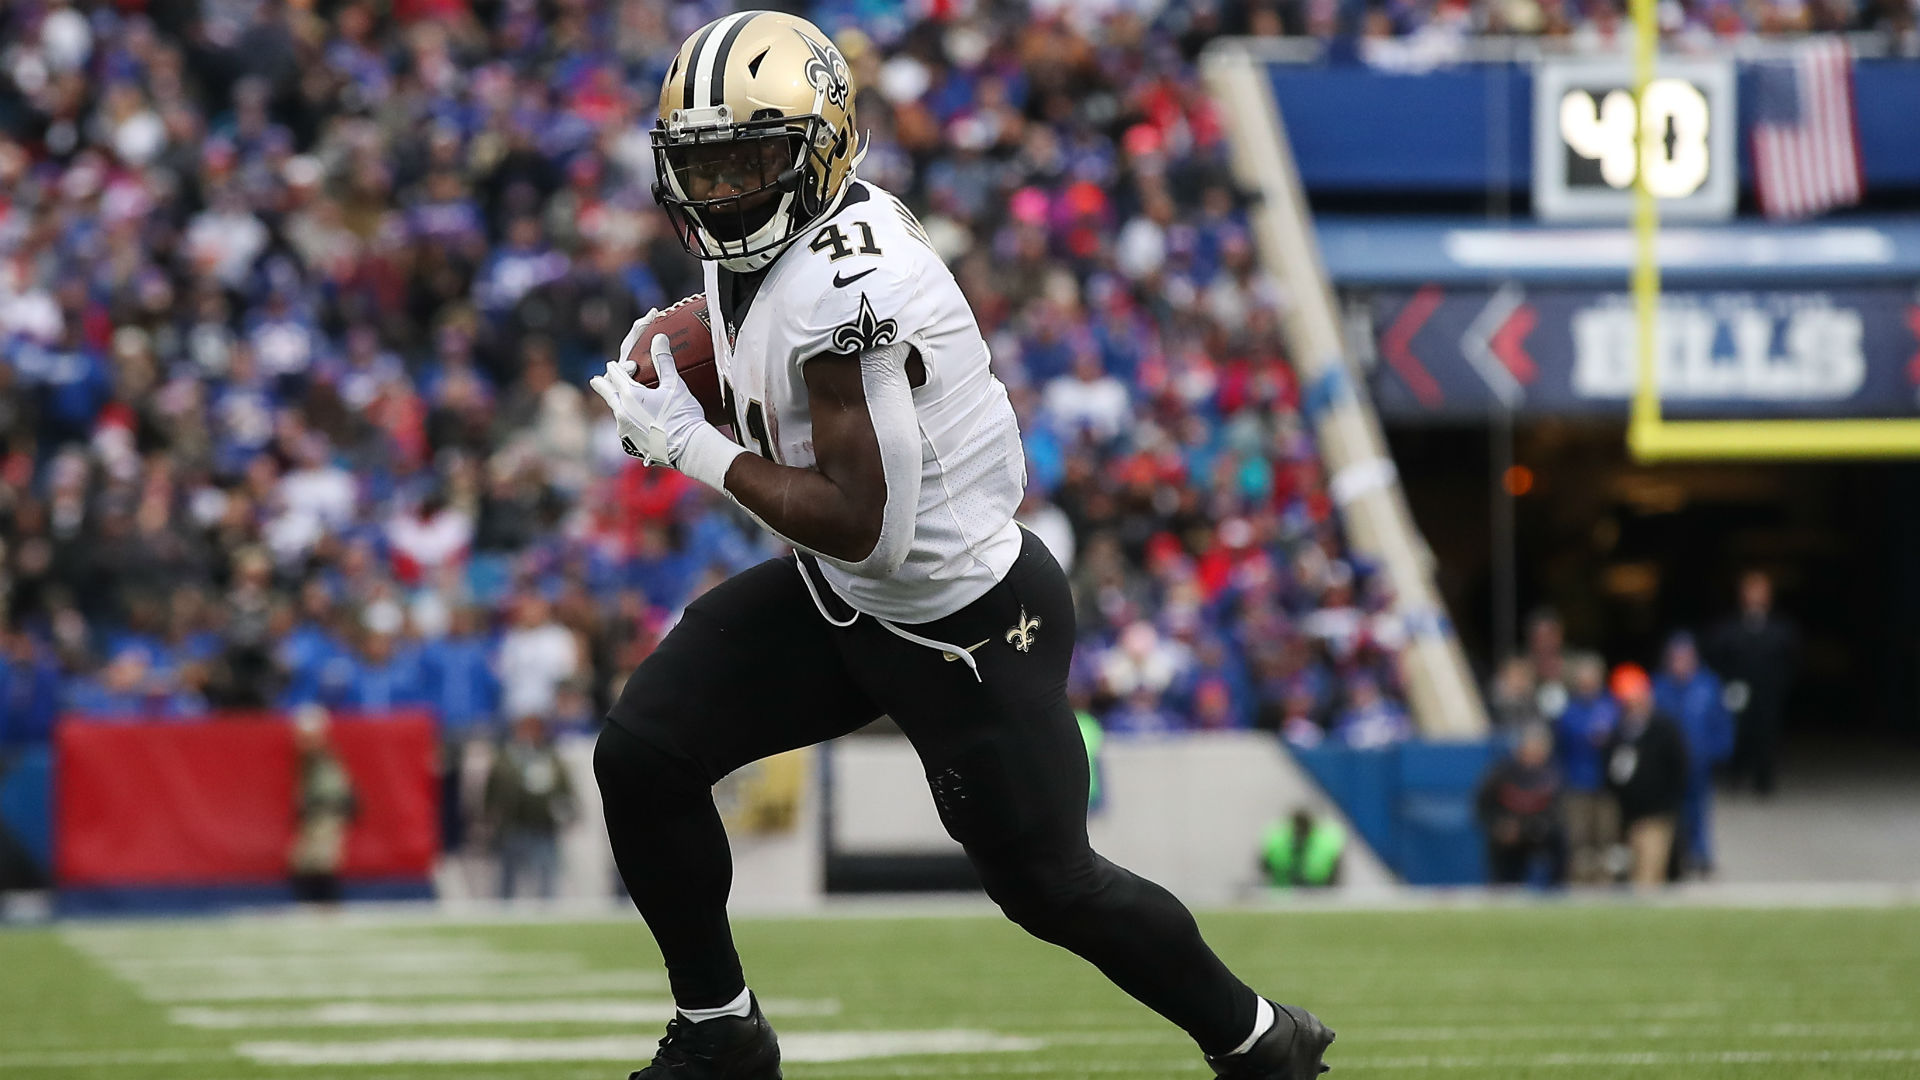 Saints' Mark Ingram falls back to earth in disappointing Week 12 performance